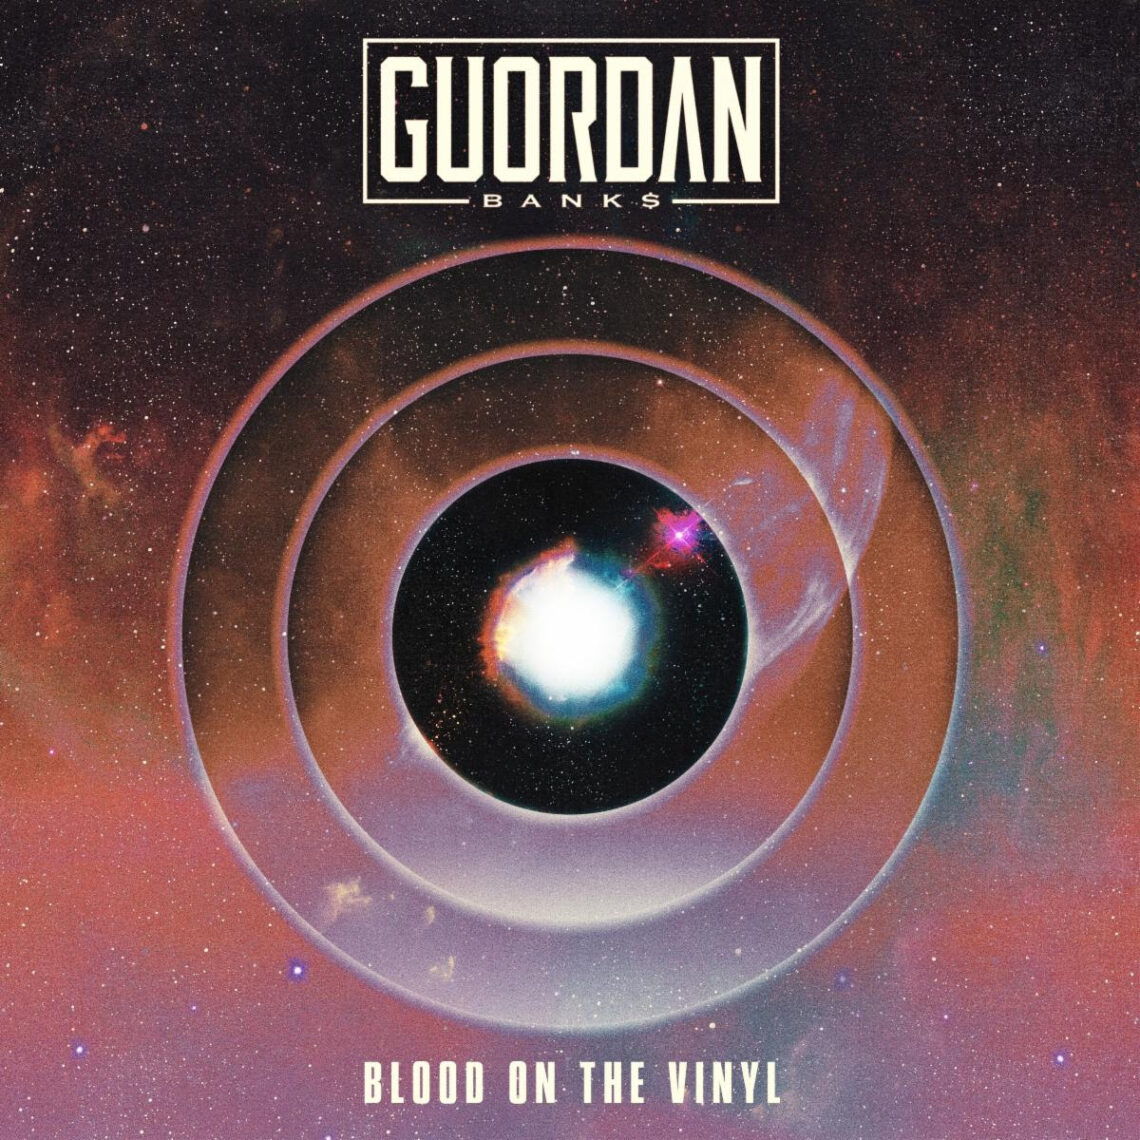 Image result for guordan banks blood on the vinyl